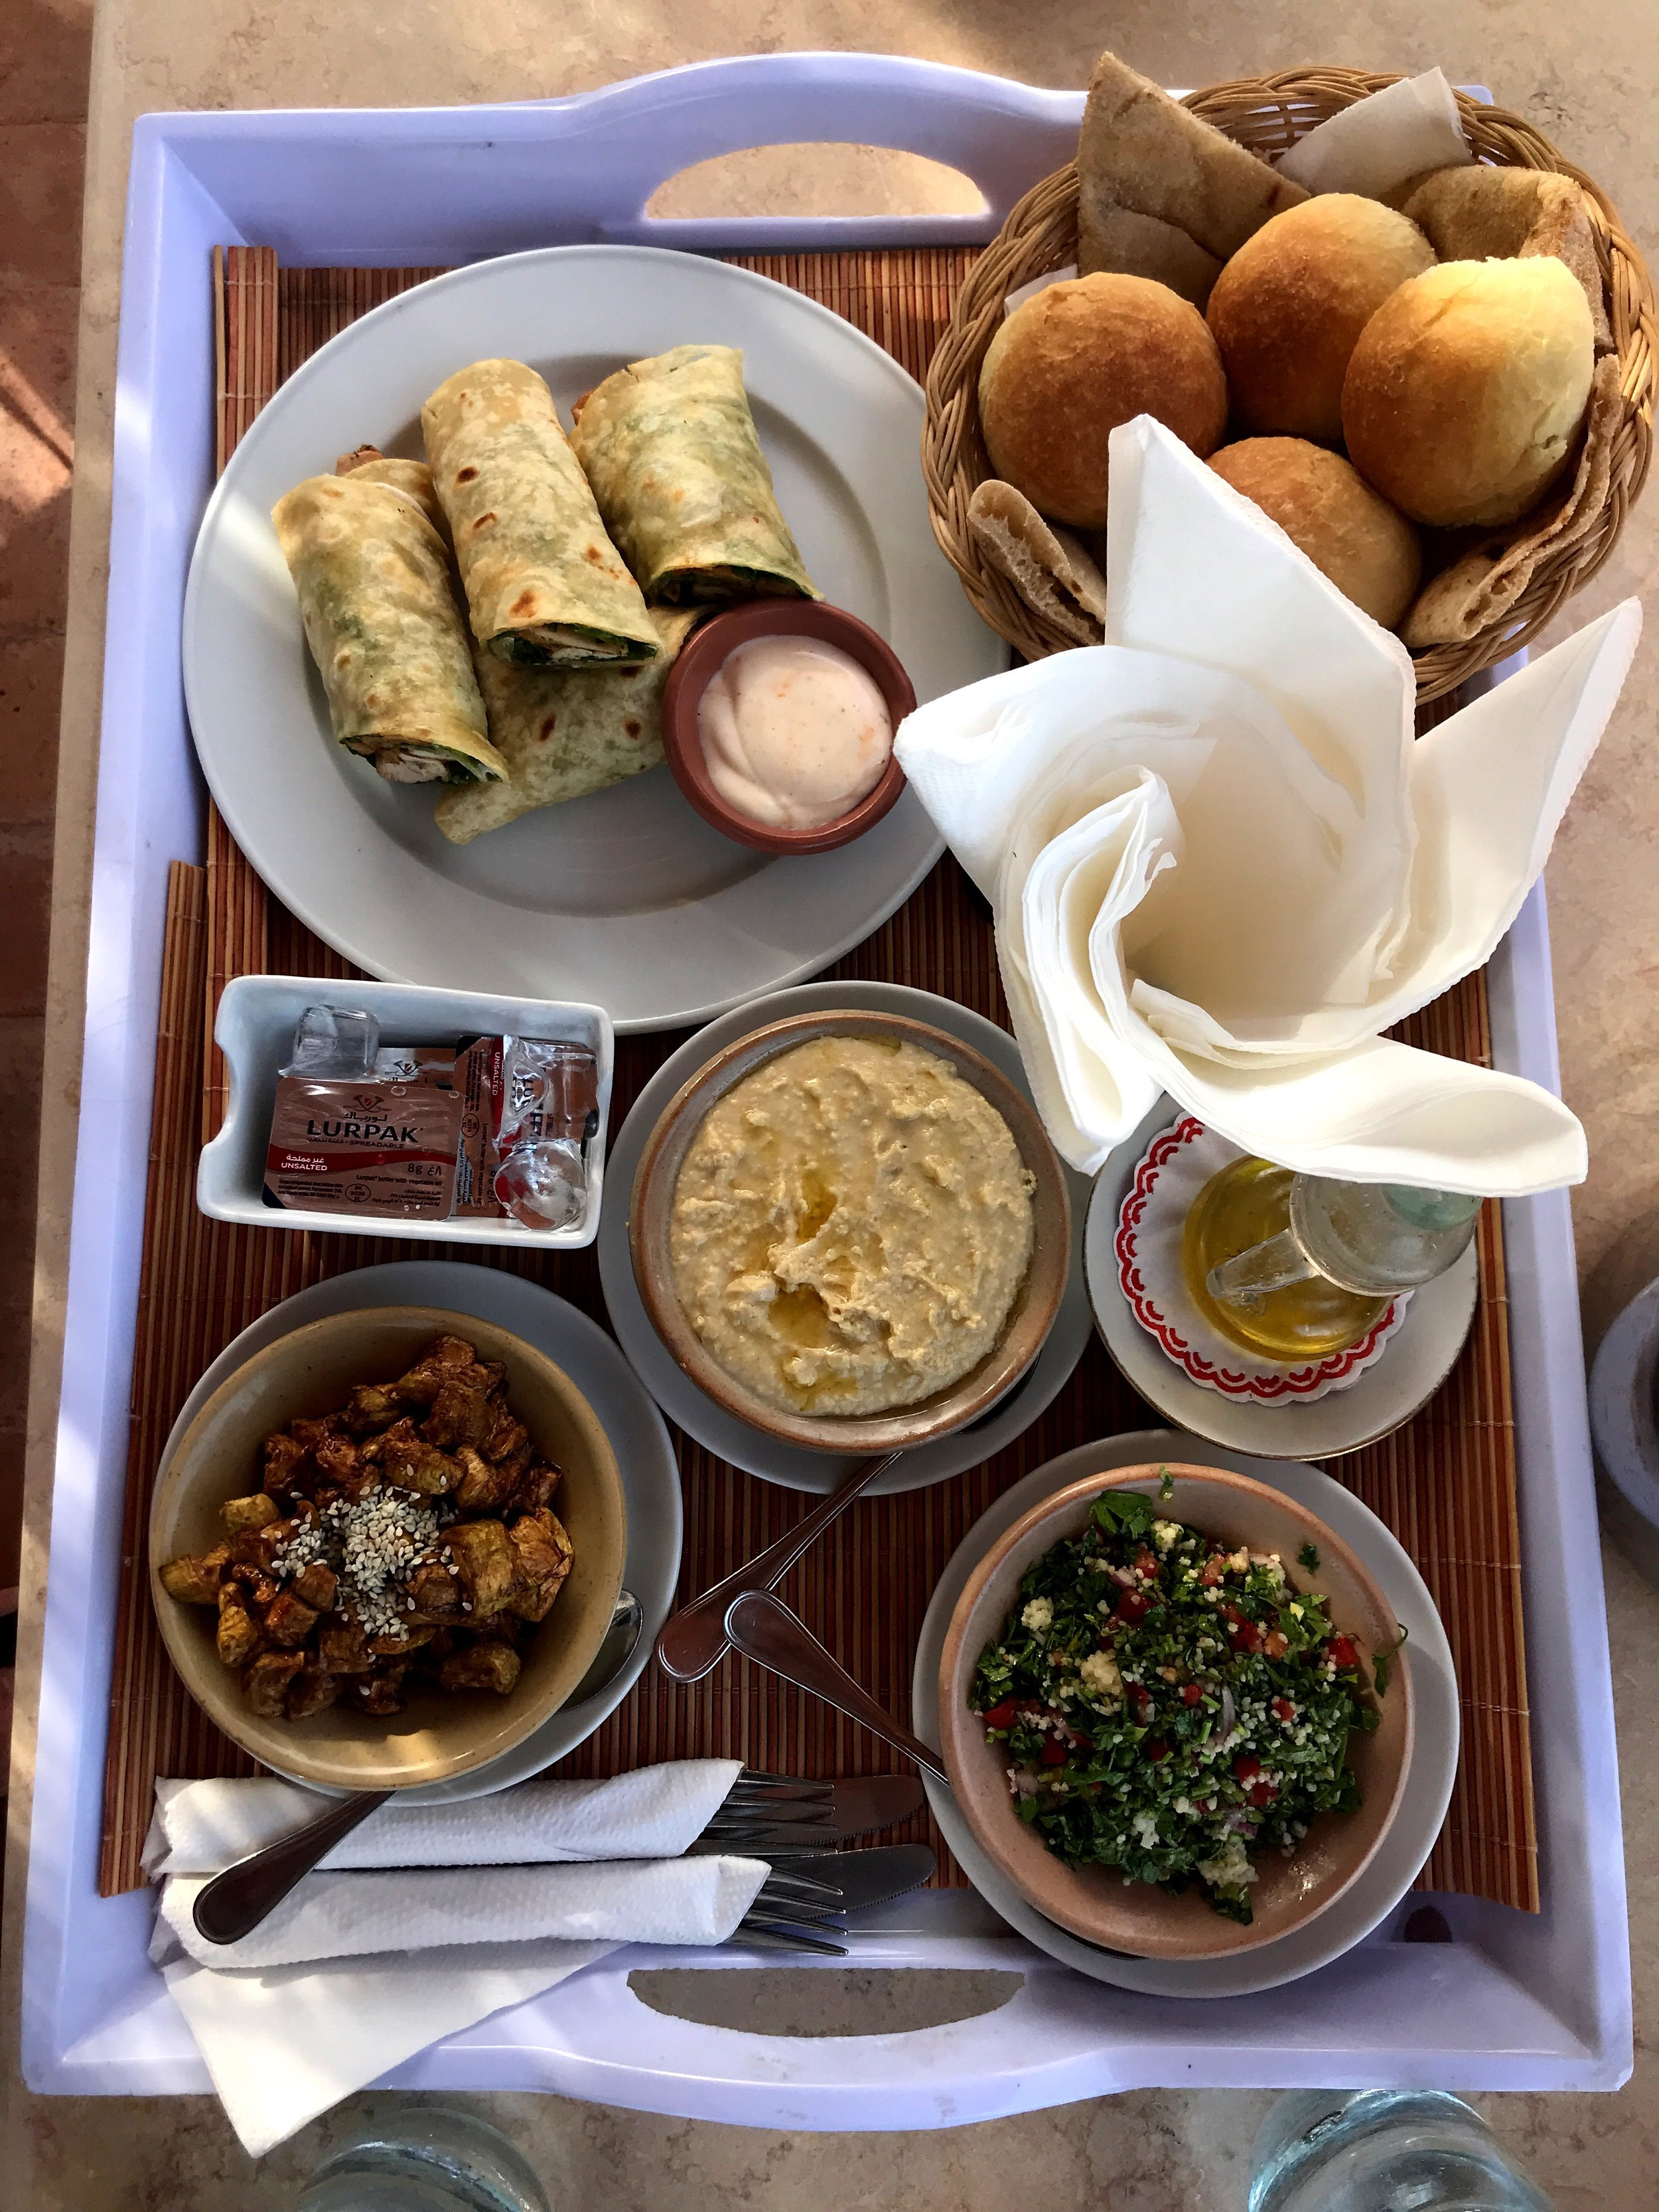 Lunch of mezze, or small dishes, which we enjoyed al fresco by the pool